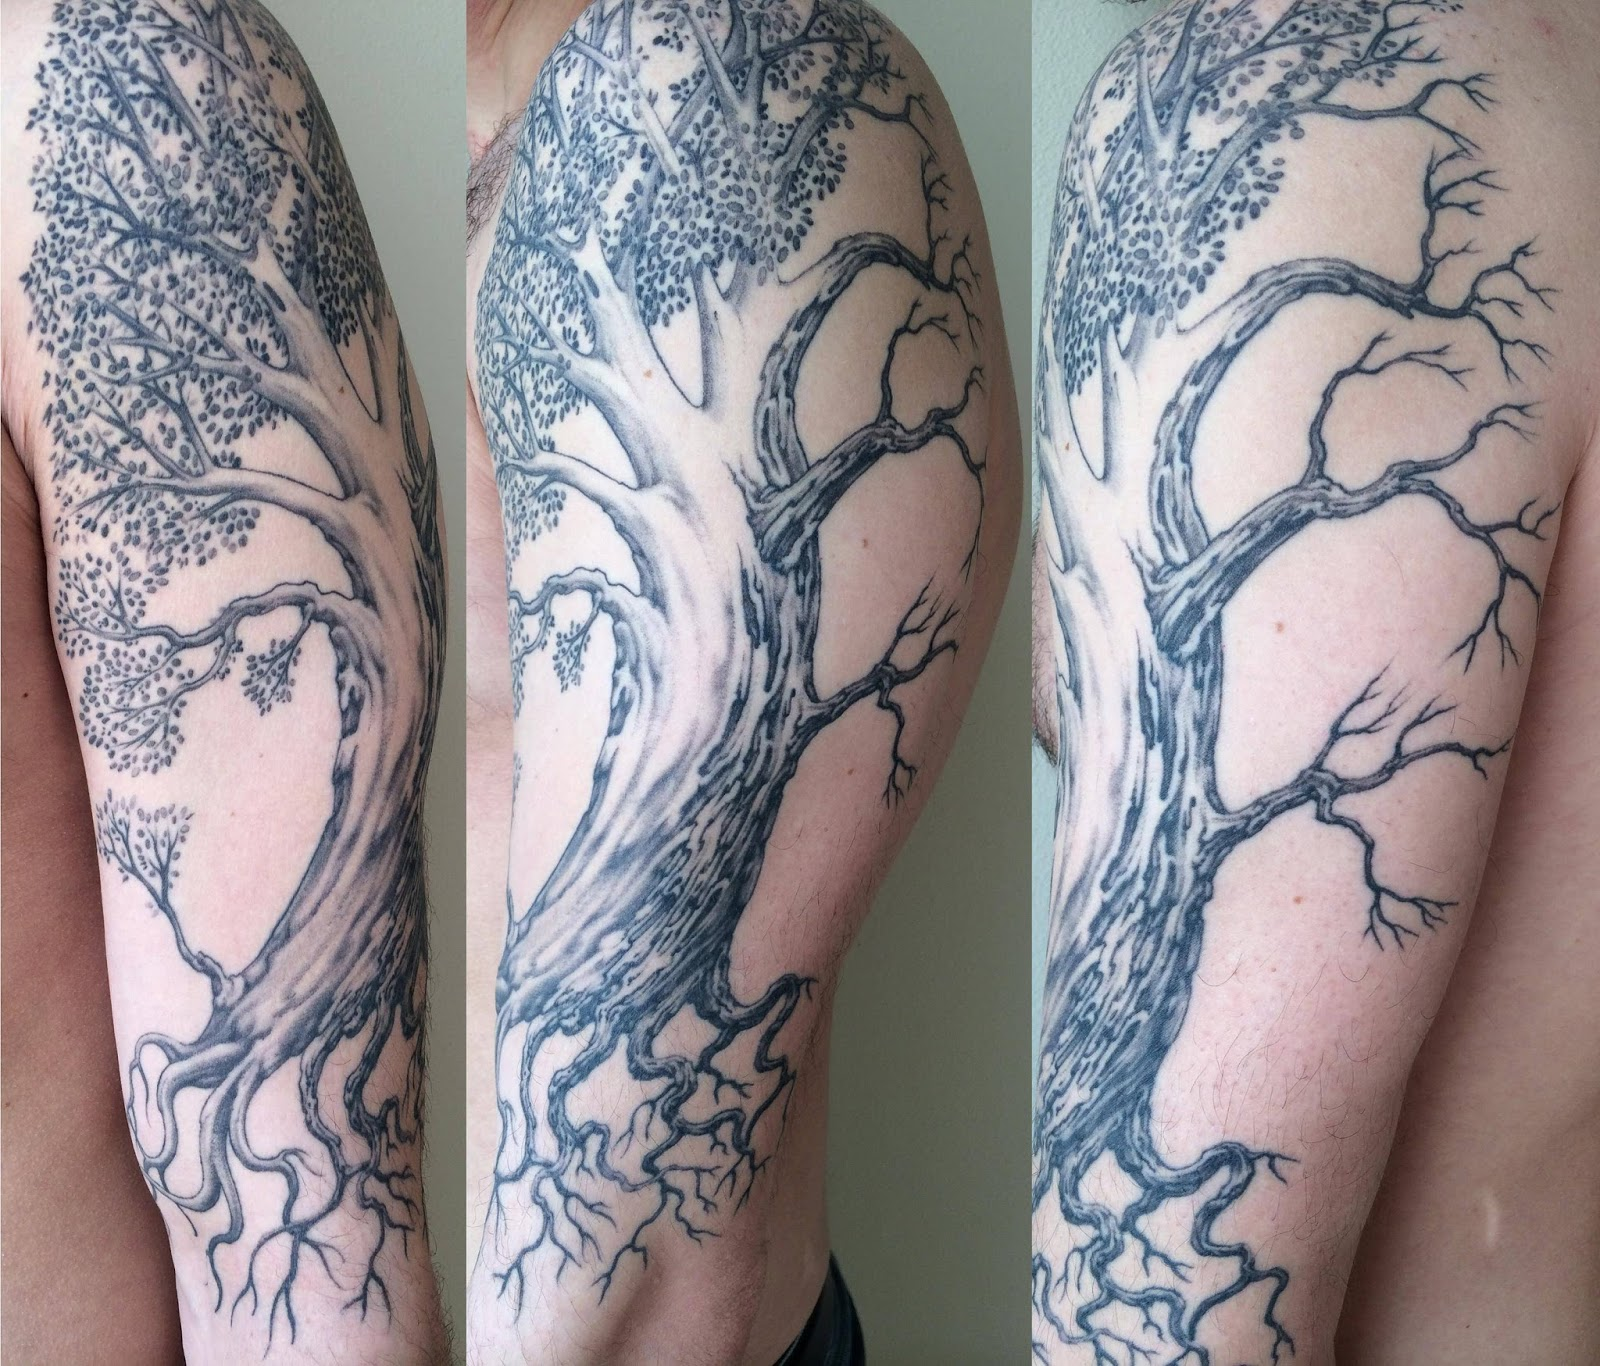 Awesome inks tattoo ideas inspiration and information for Death tree tattoo